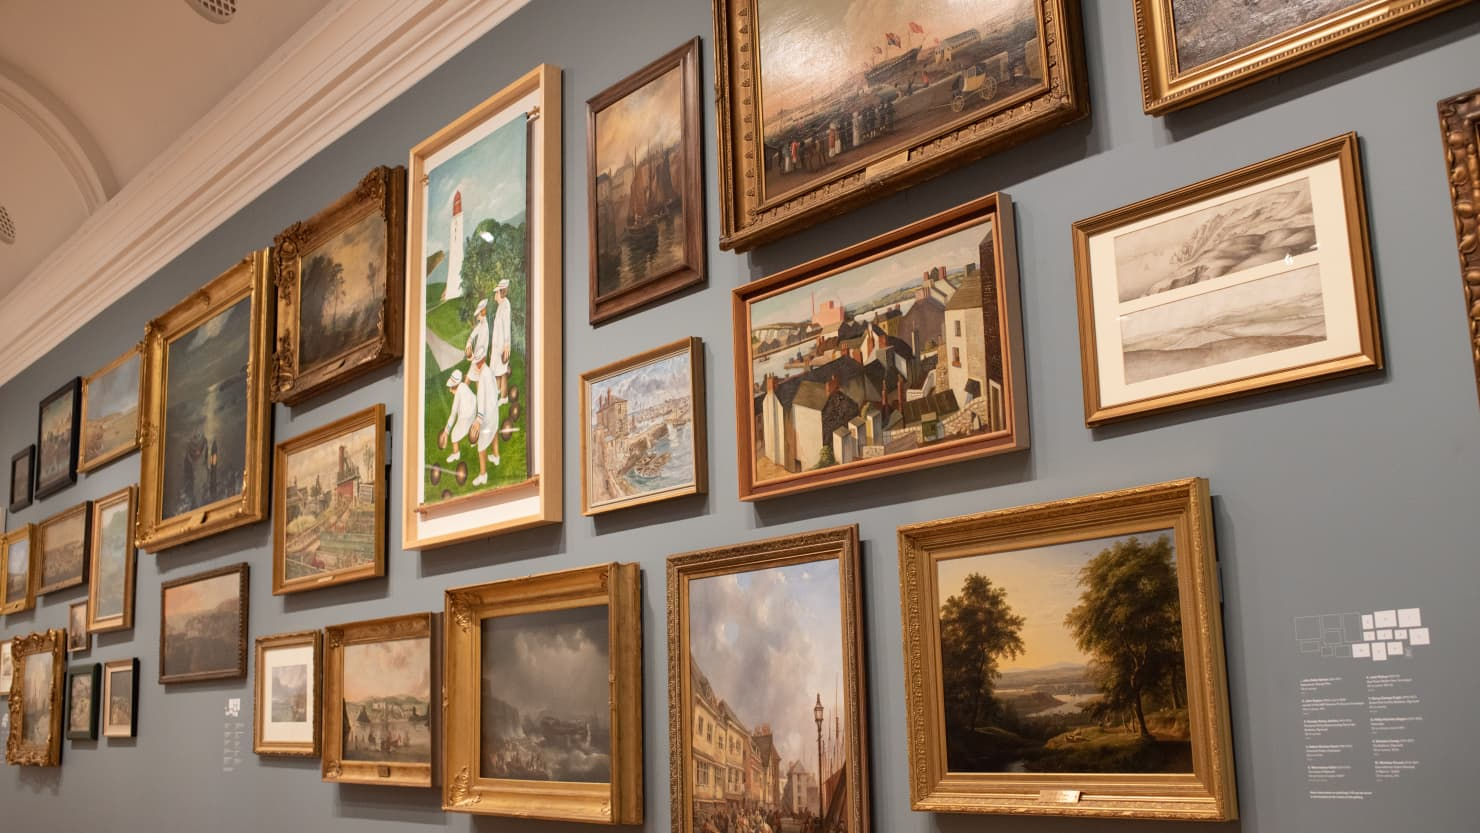 The 'Plymouth Panorama' in the Our Art gallery at The Box, Plymouth